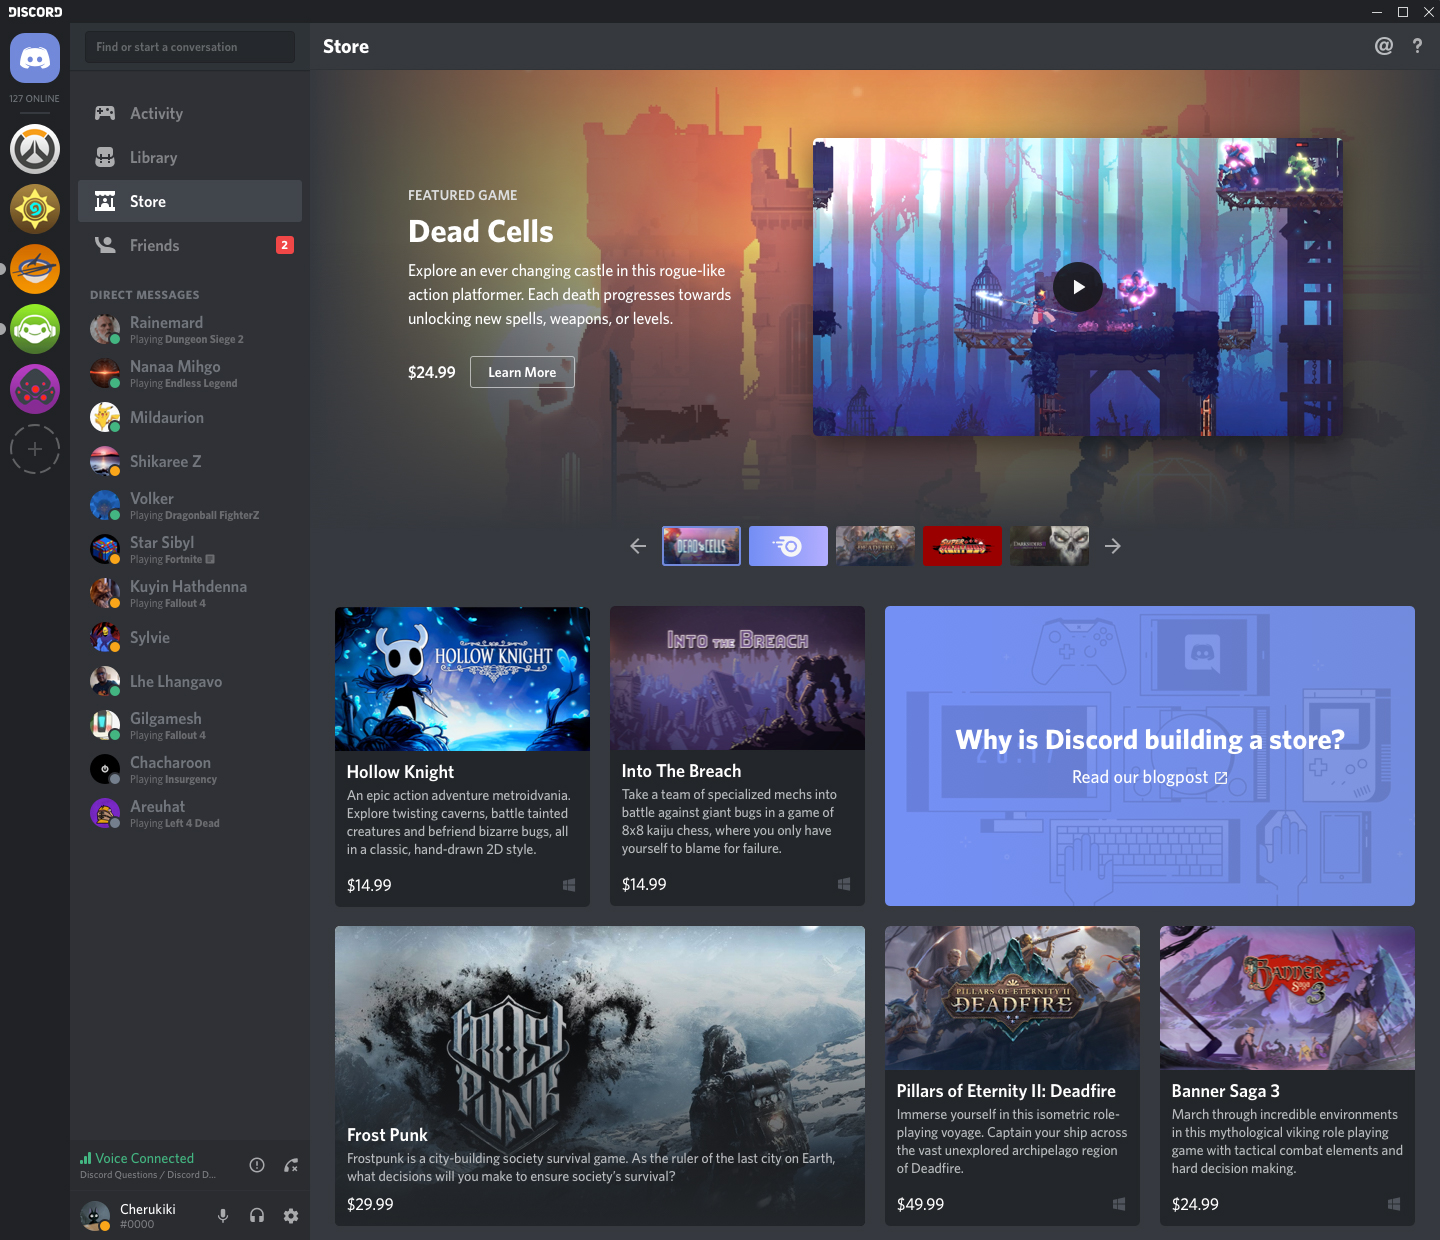 Discord launches app store with major games, indies and exclusives